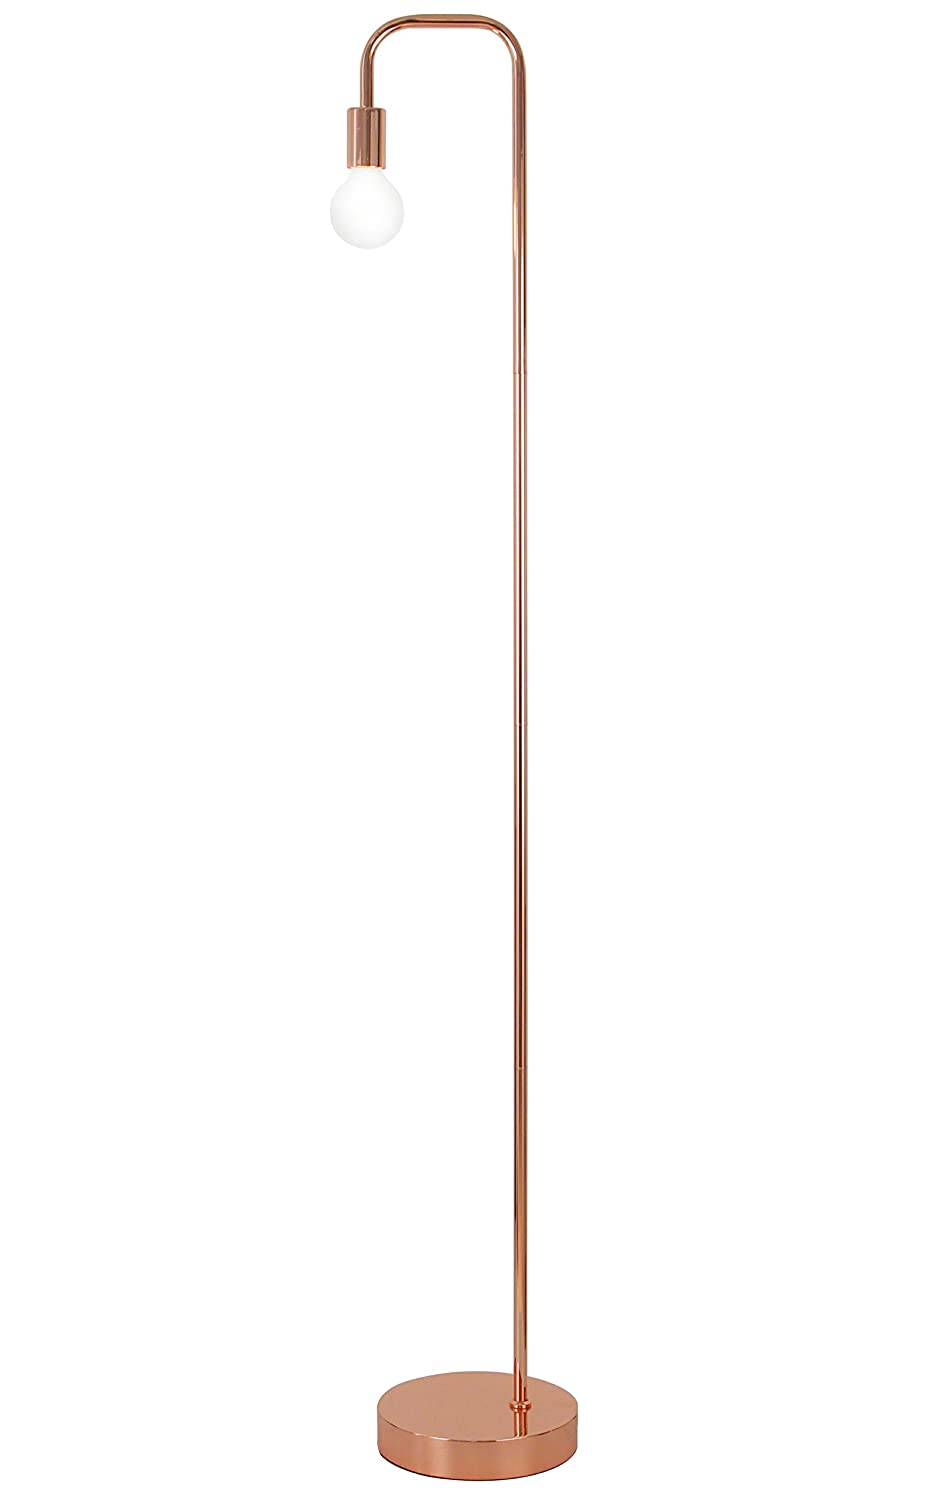 Floor Lamp for Living Room, Industrial Rose Gold Metal Reading Lamp, Contemporary Bedroom Décor, Led Bulb 4W Gifts LA JOLIE MUSE